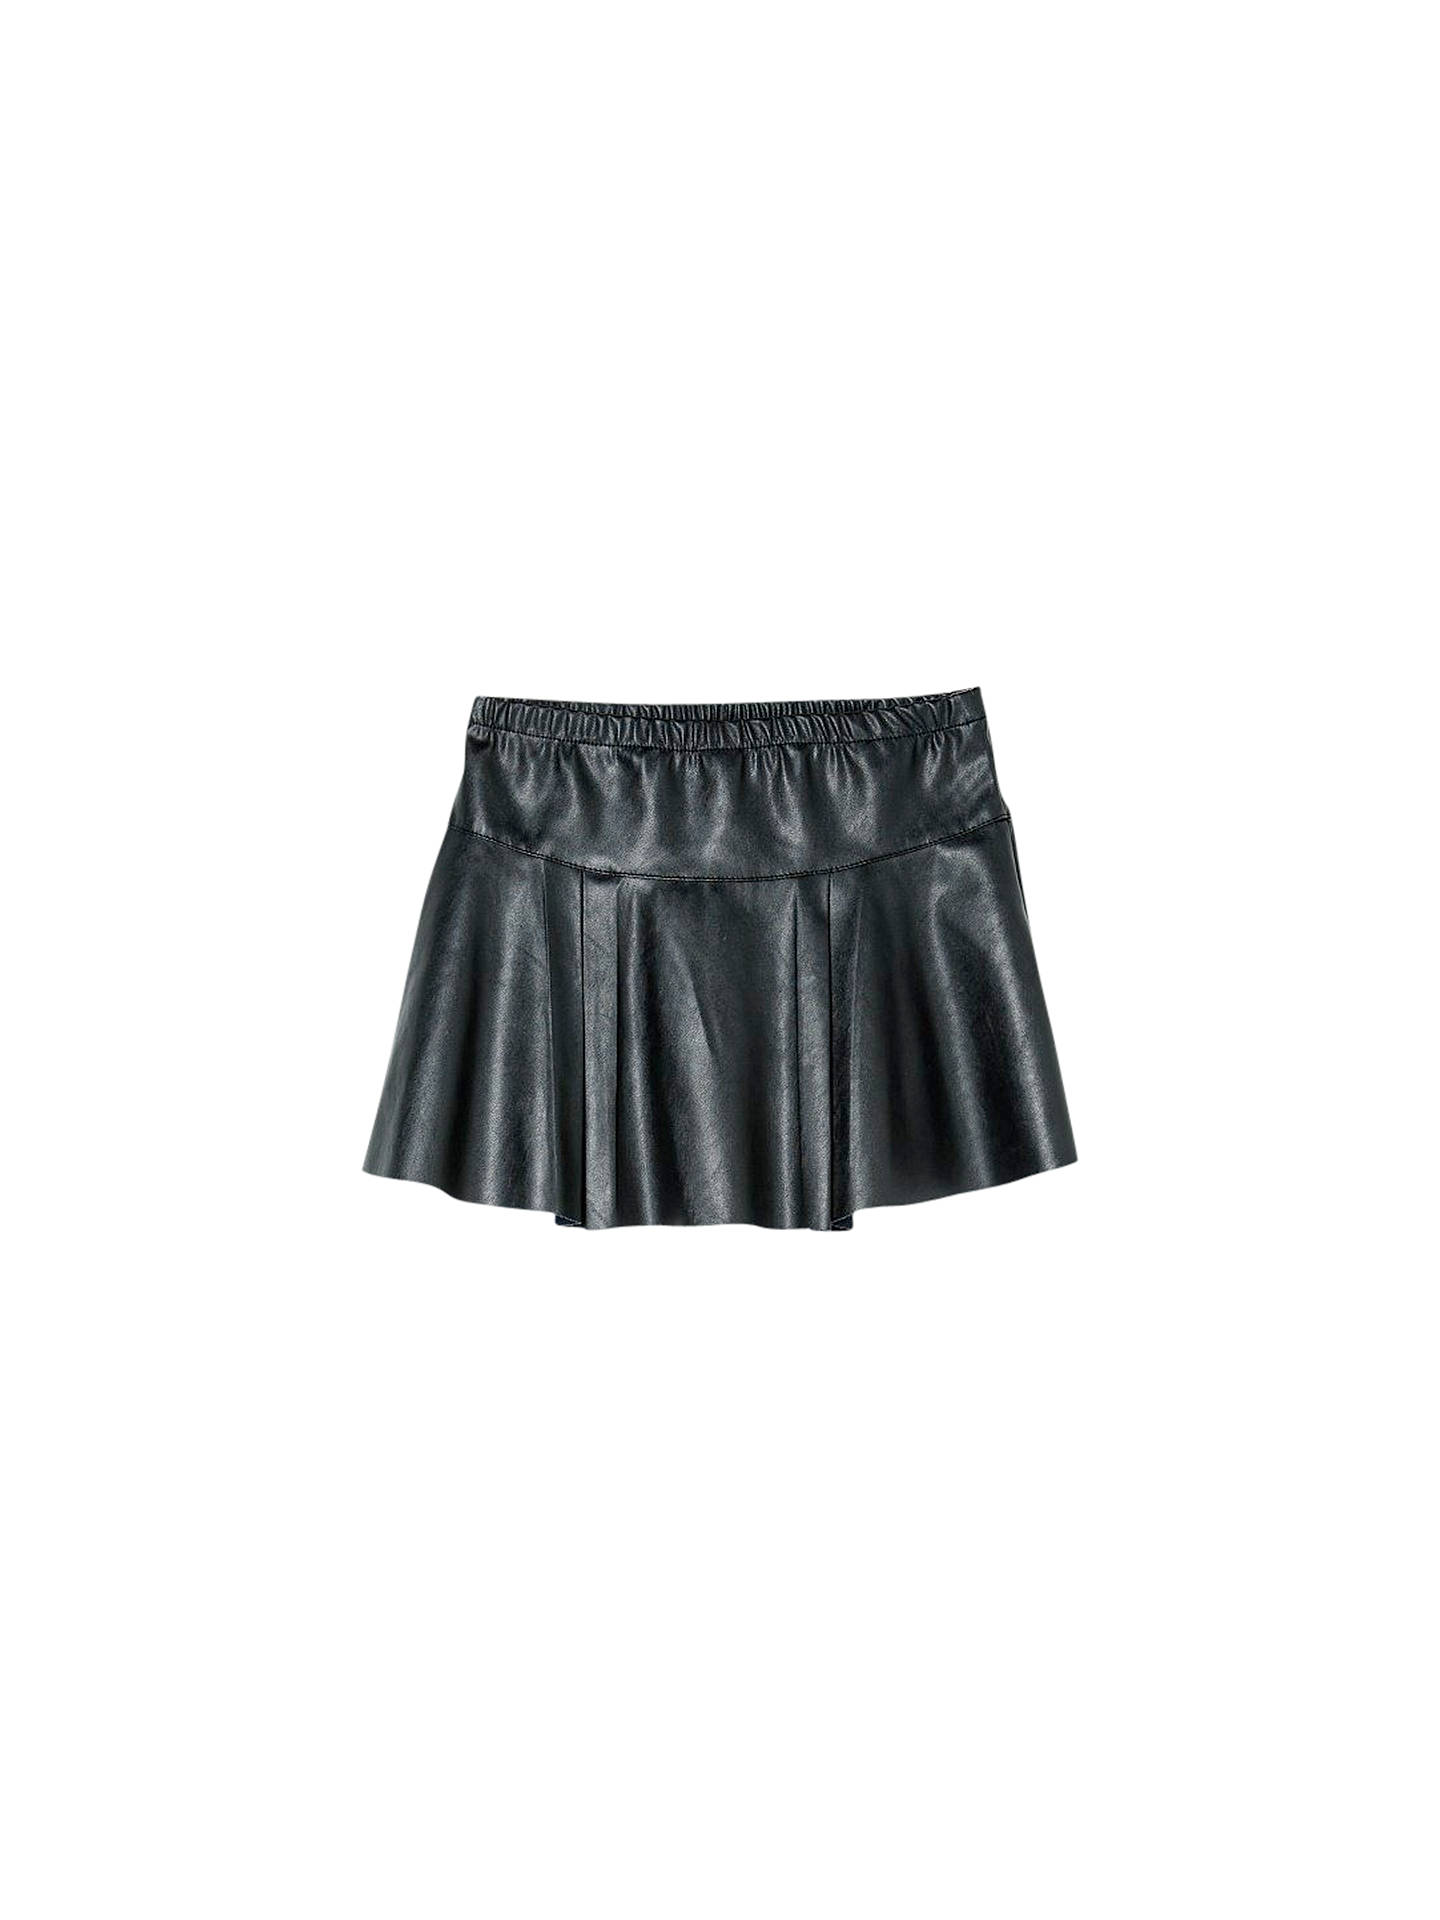 b1f097190b5 Buy Mango Kids Girls' Flaired Faux Leather Skirt, Black, Small Online at  johnlewis